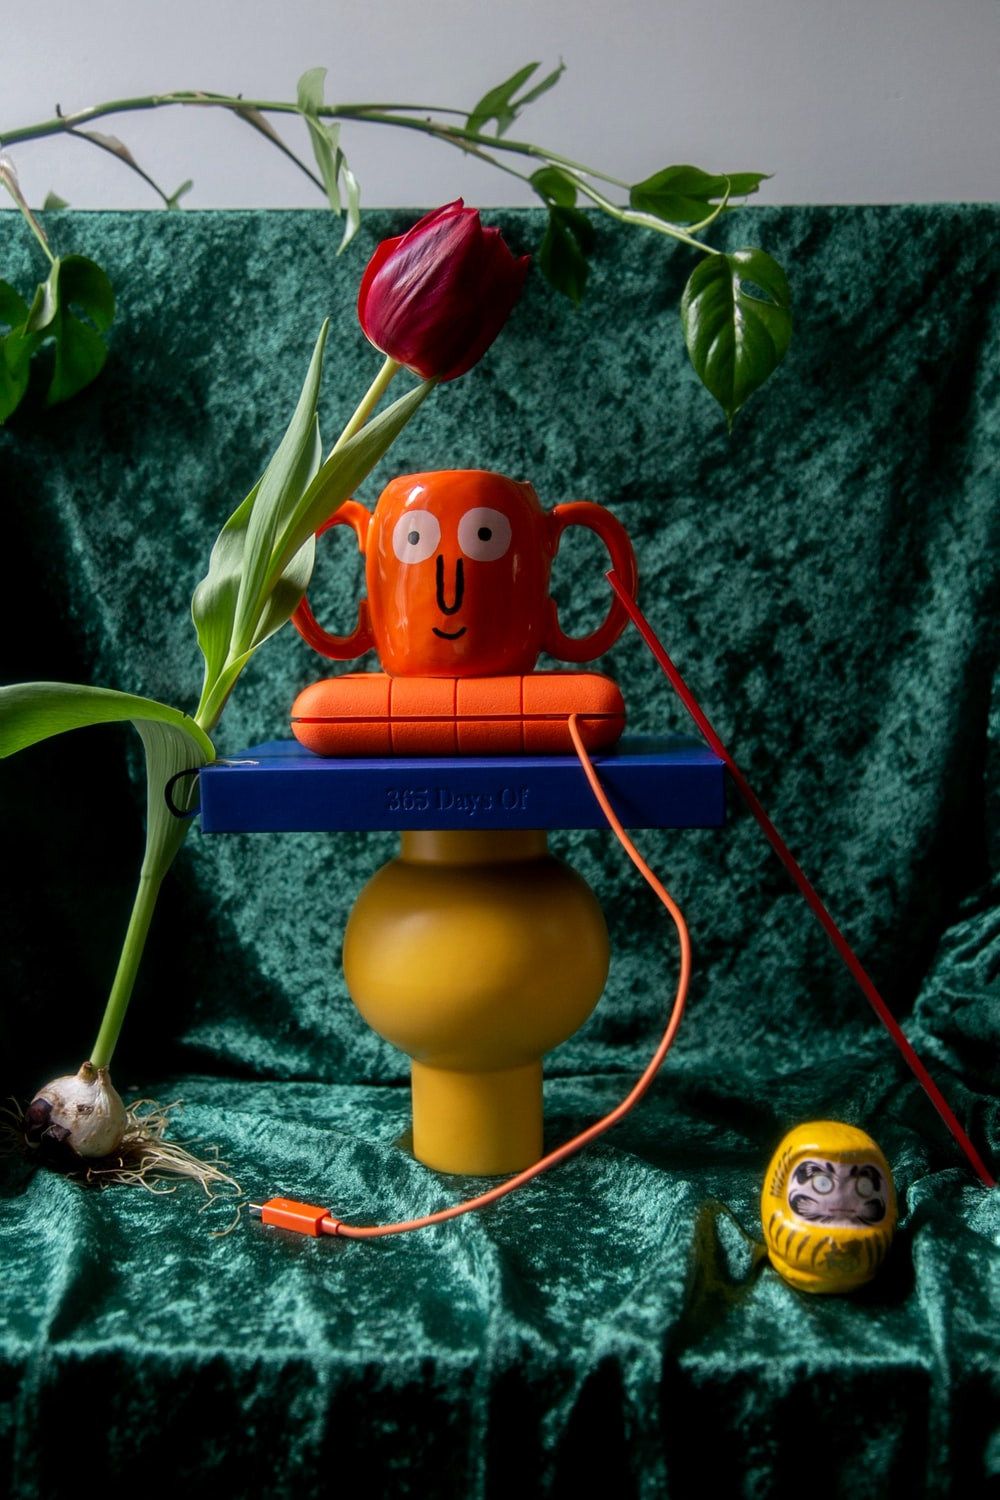 yellow and red plastic toy on green leaves